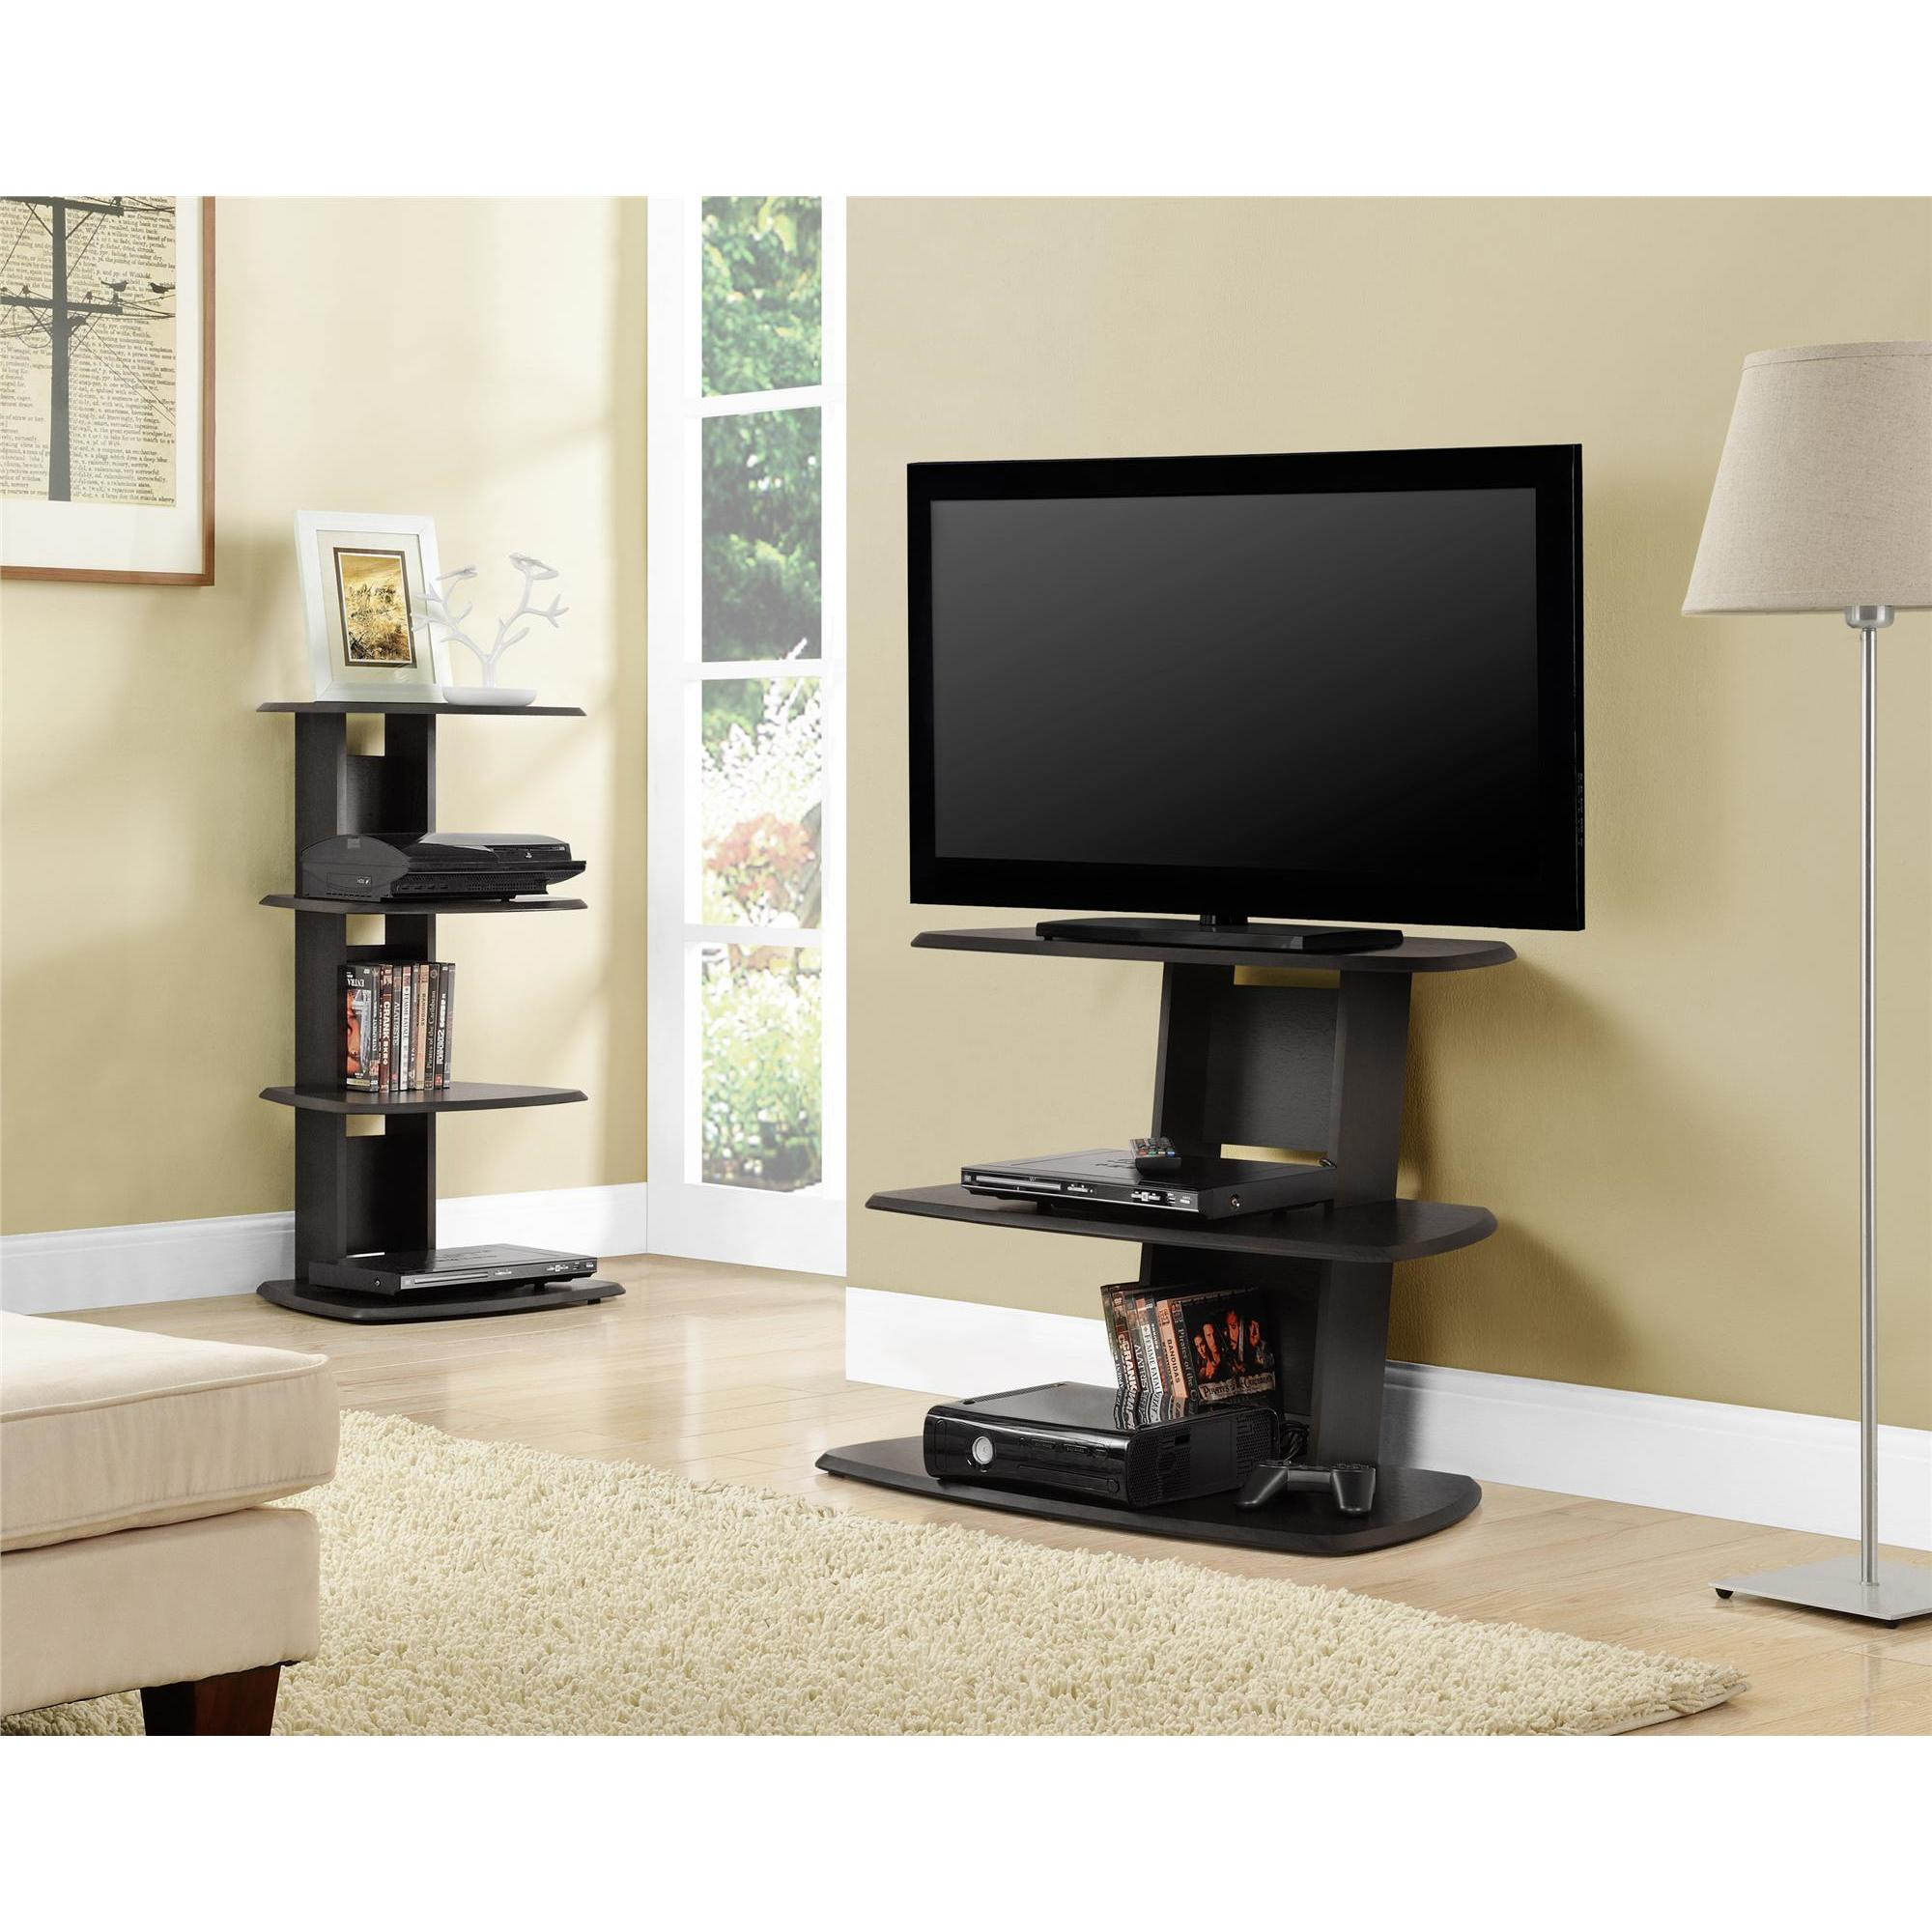 Shop Avenue Greene Crossfield Tv Stand For Tvs Up To 32 Inch Wide